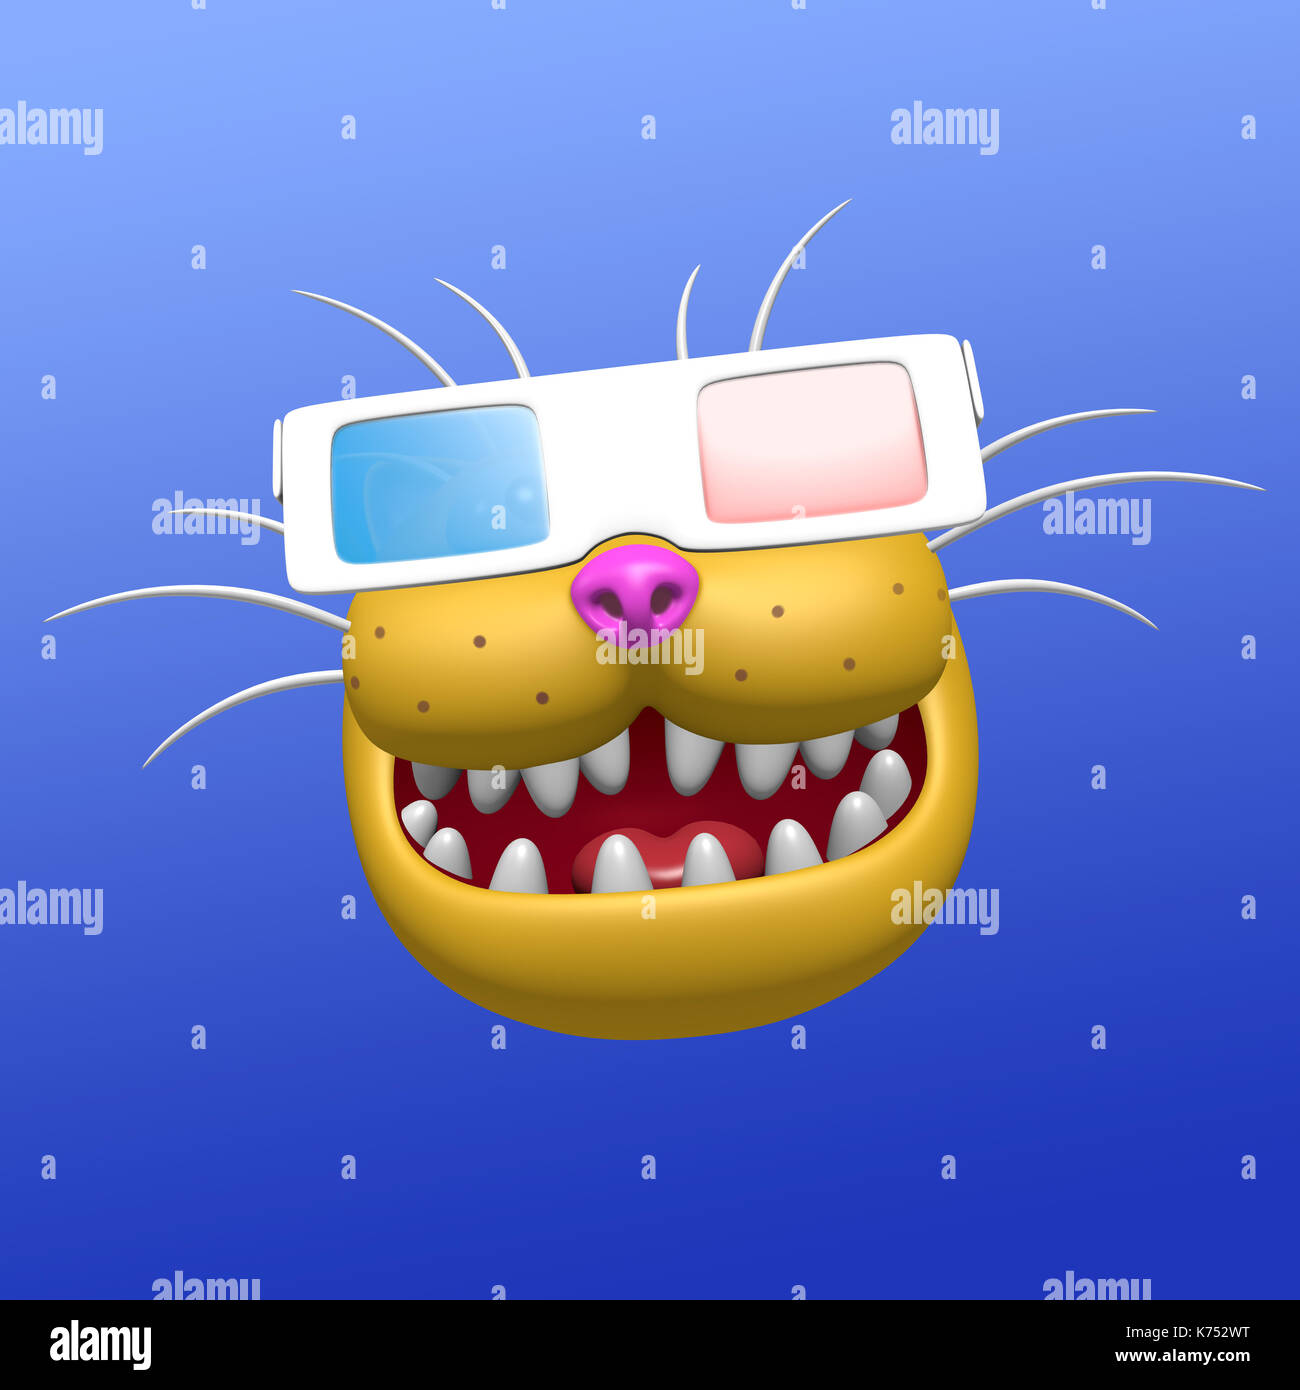 d75fb60dc03 Funny smiling orange cat muzzle in 3d glasses. 3D illustration. Cute  cartoon character.